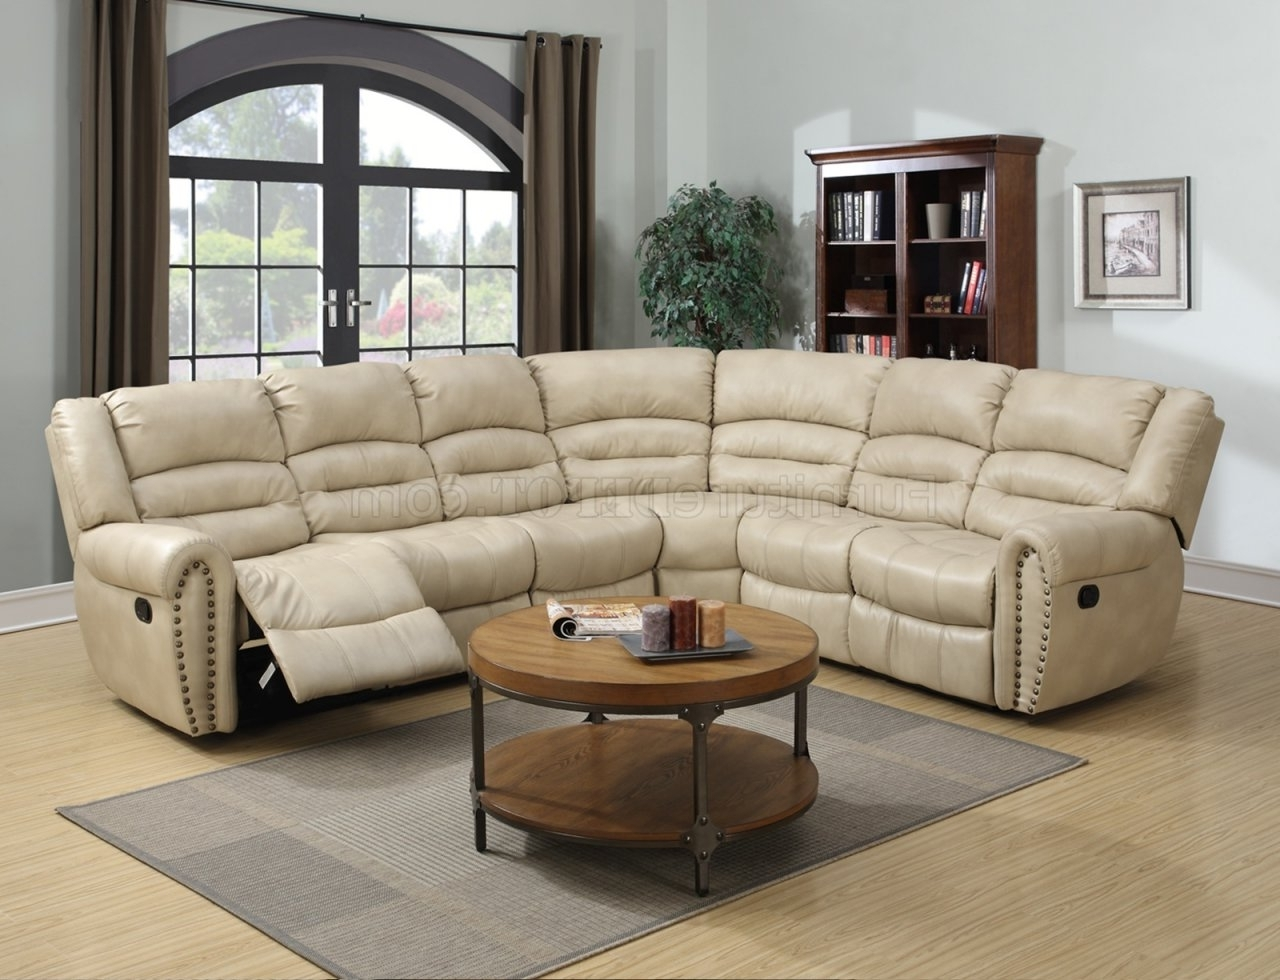 Well Known G687 Motion Sectional Sofa In Beige Bonded Leatherglory Inside Motion Sectional Sofas (View 20 of 20)